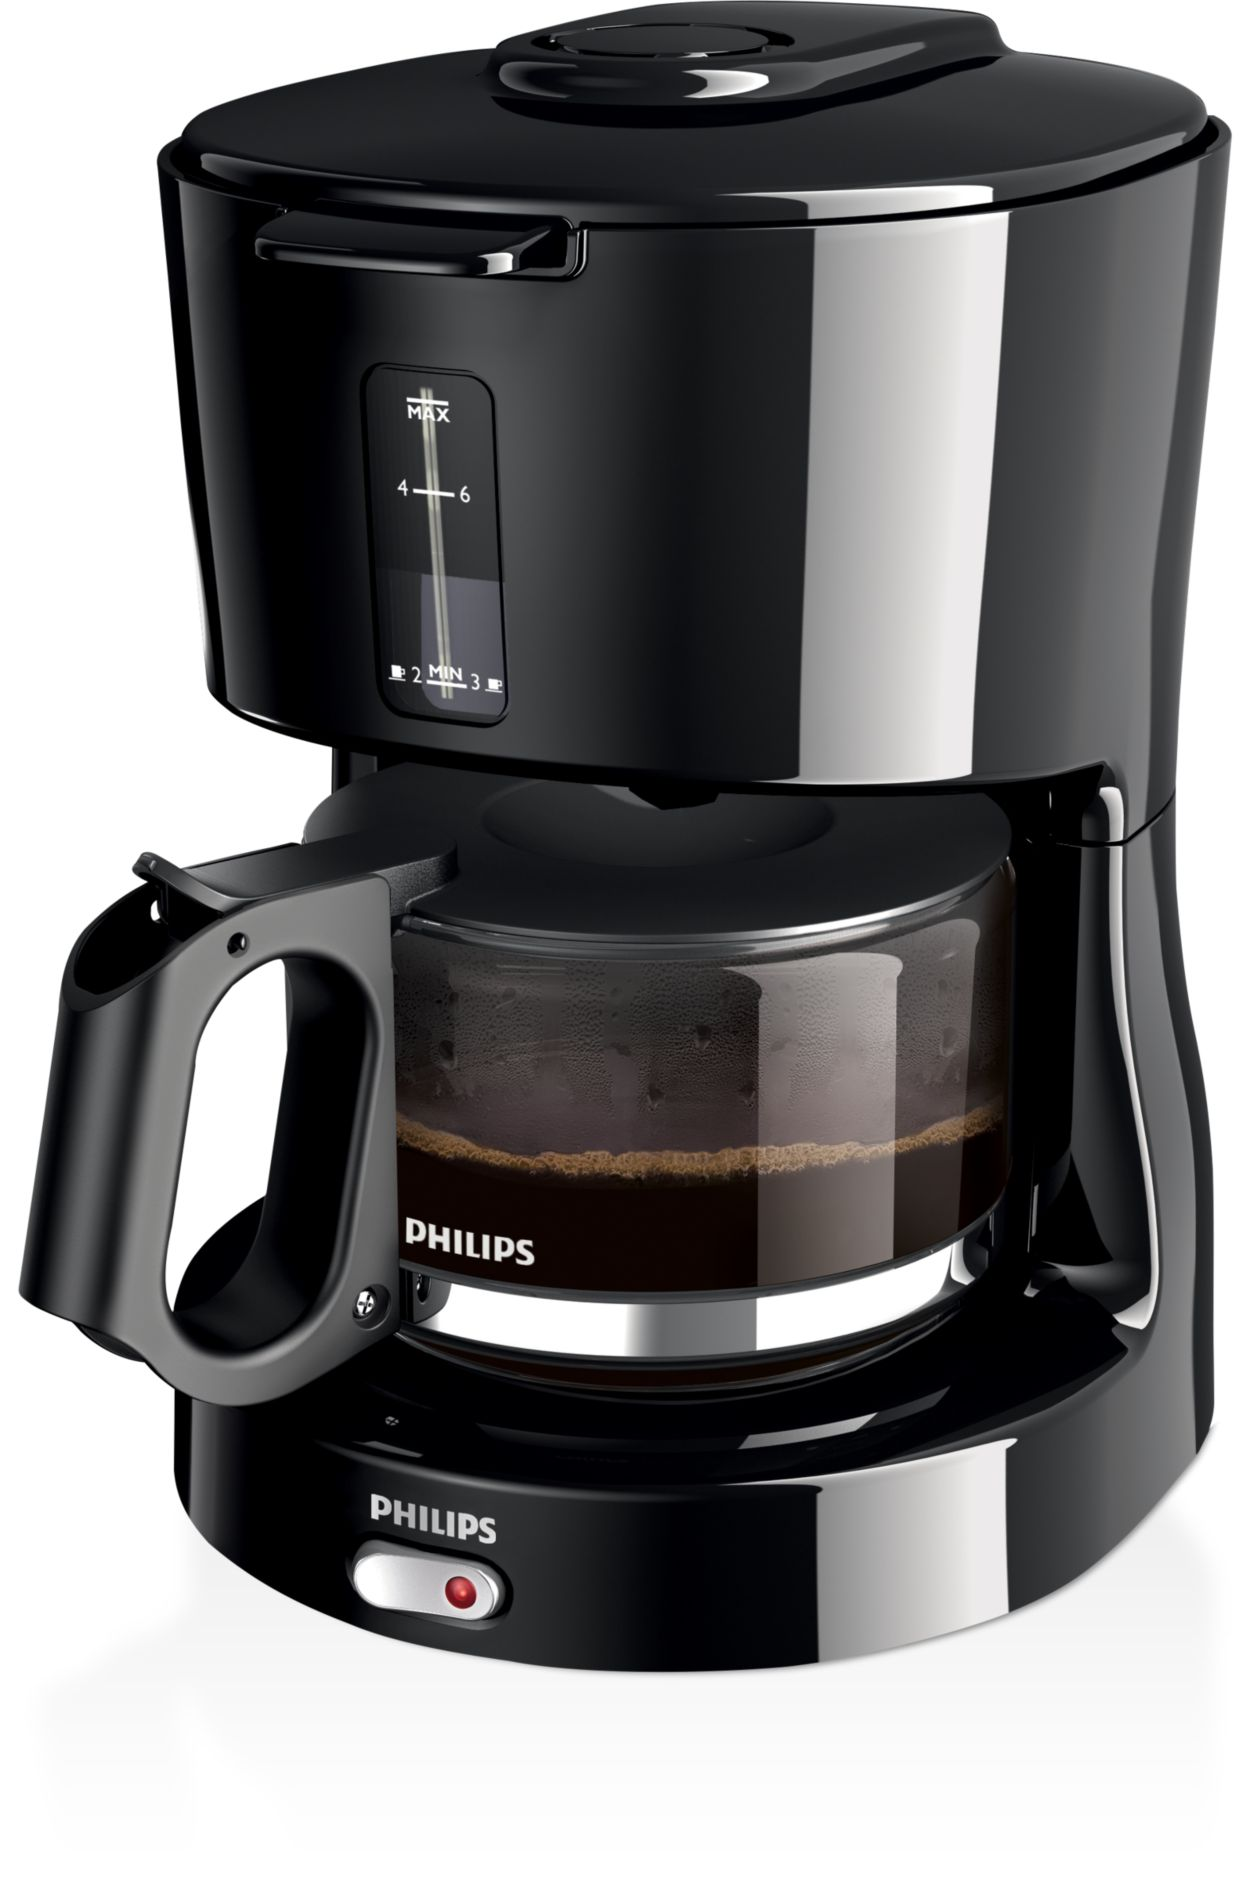 Philips Coffee Maker Calc : Daily Collection Coffee maker HD7450/20 Philips